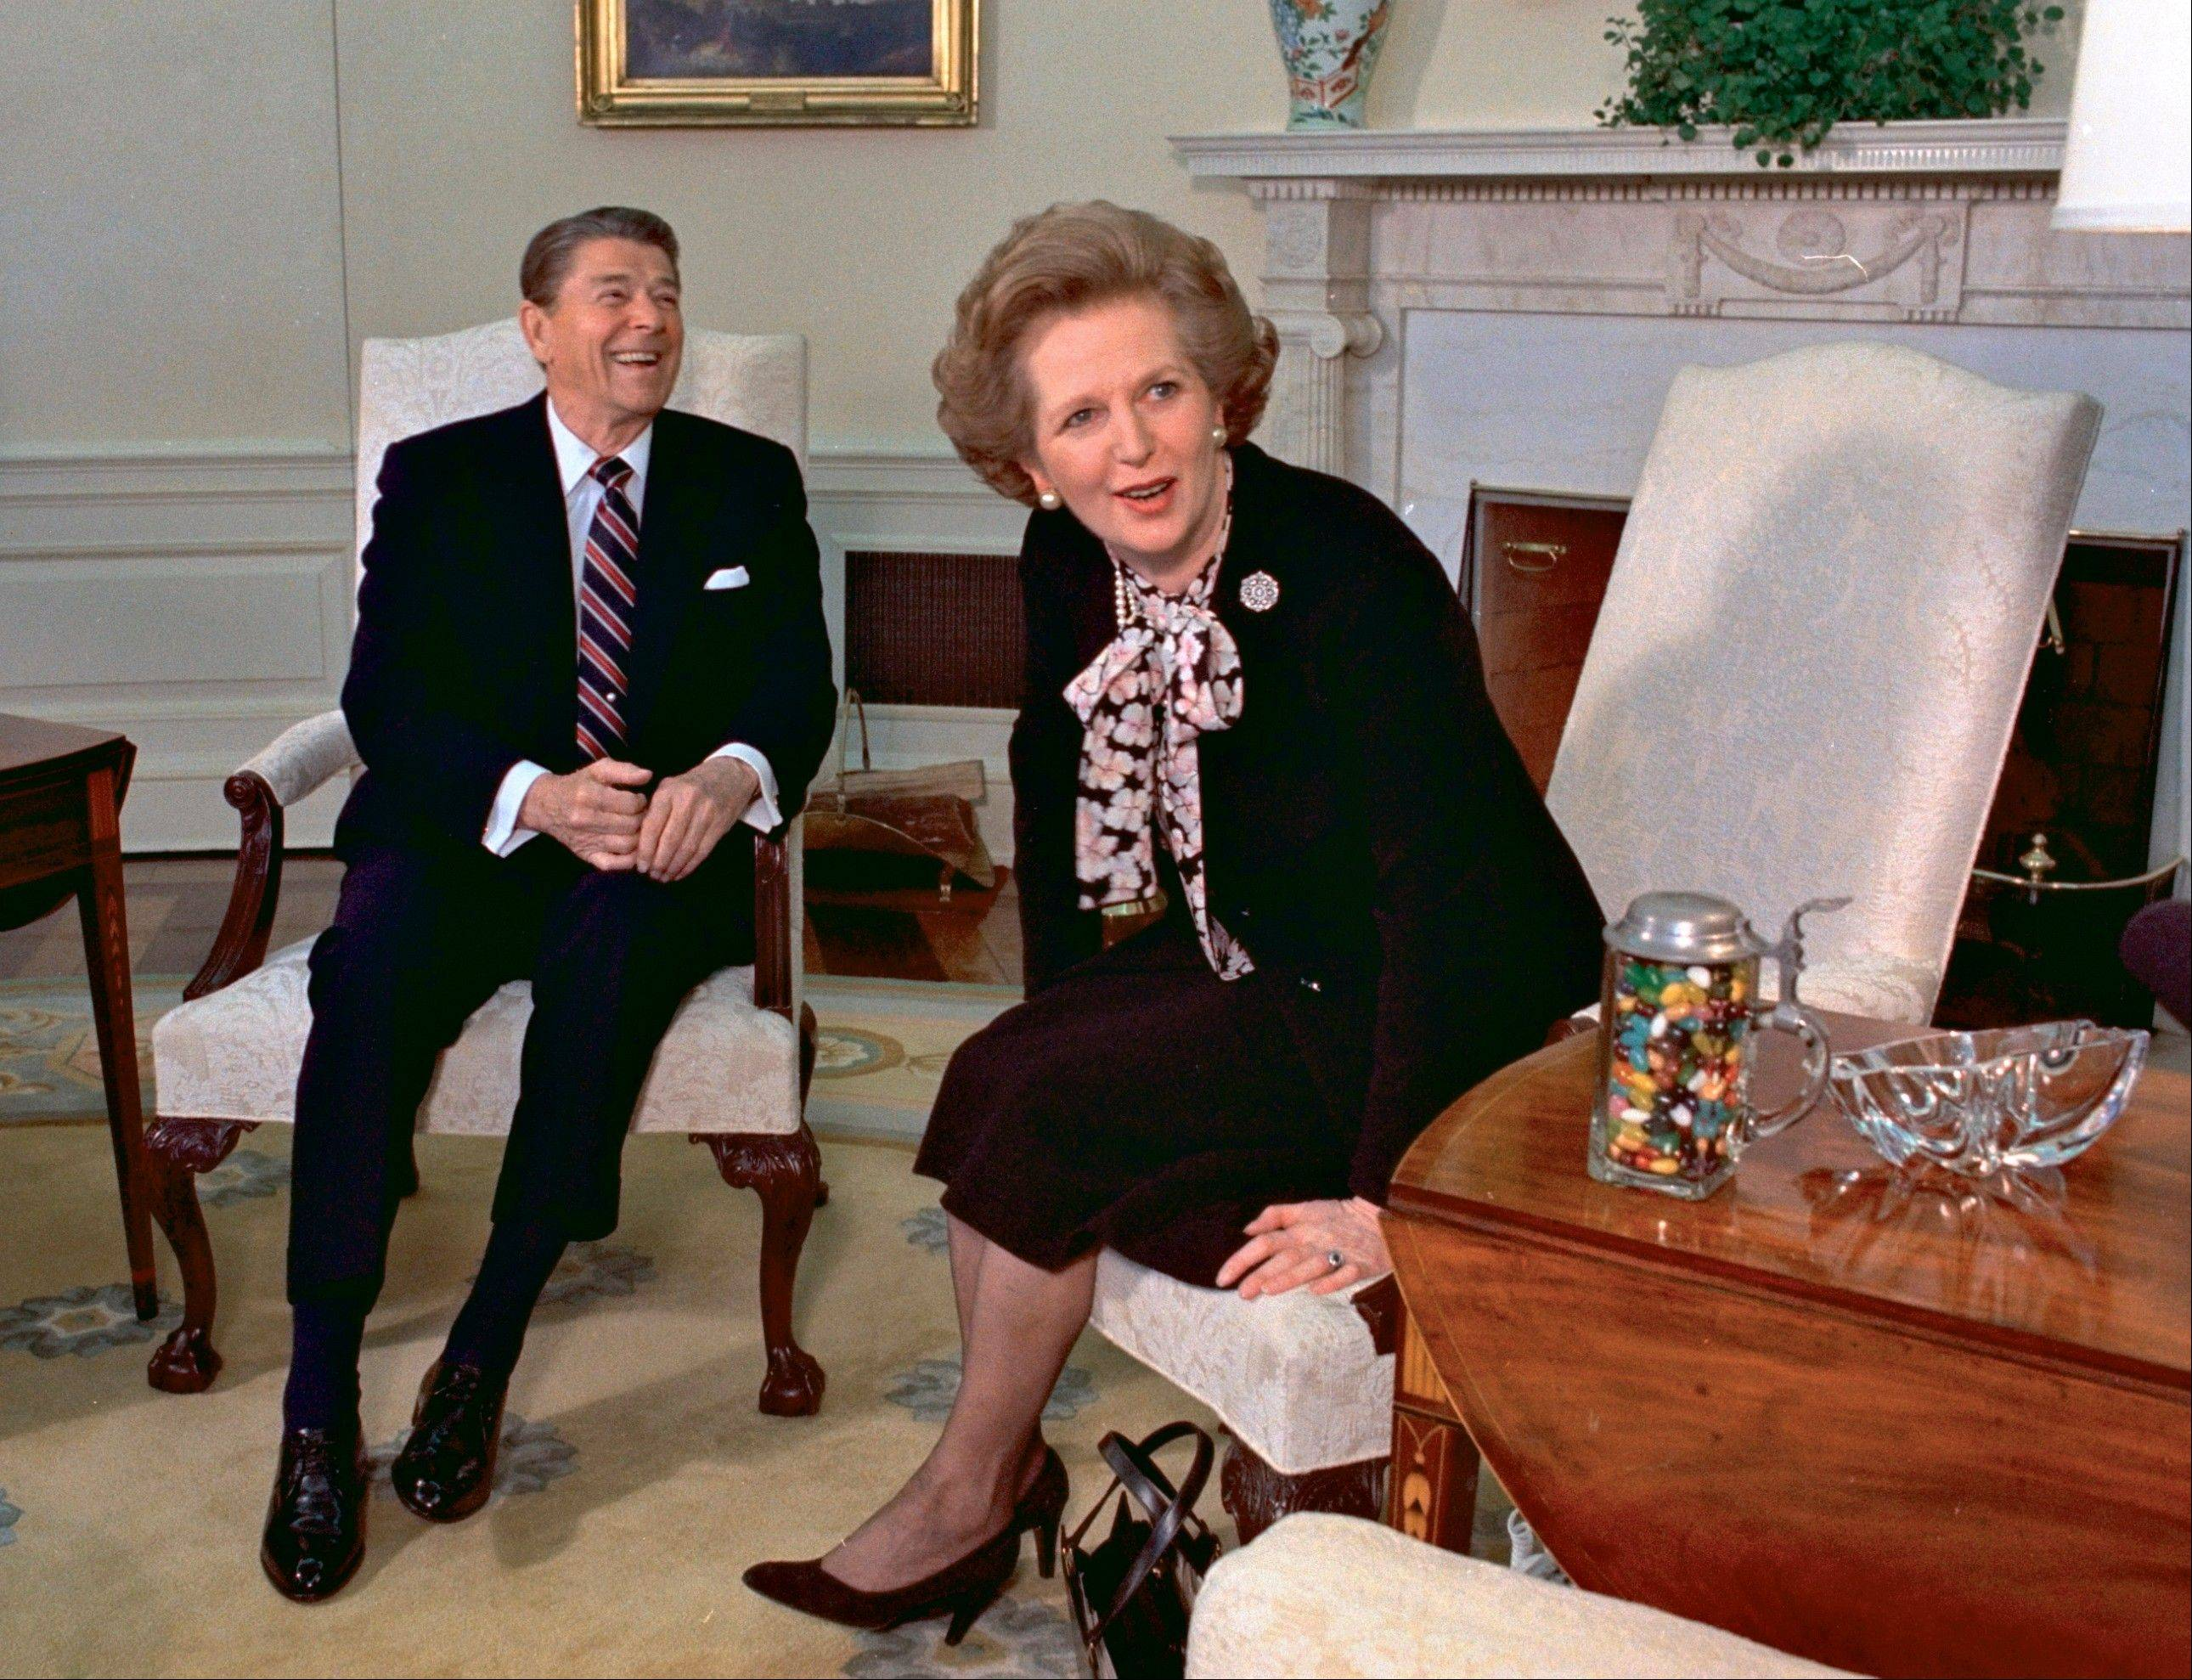 In this Feb. 20, 1985 file photo, former British Prime Minister Margaret Thatcher meets with her friend and political ally President Ronald Reagan during a visit to the White House in Washington. Thatcher, who led Britain for 11 years, died of a stroke Monday morning, April 8, 2013.